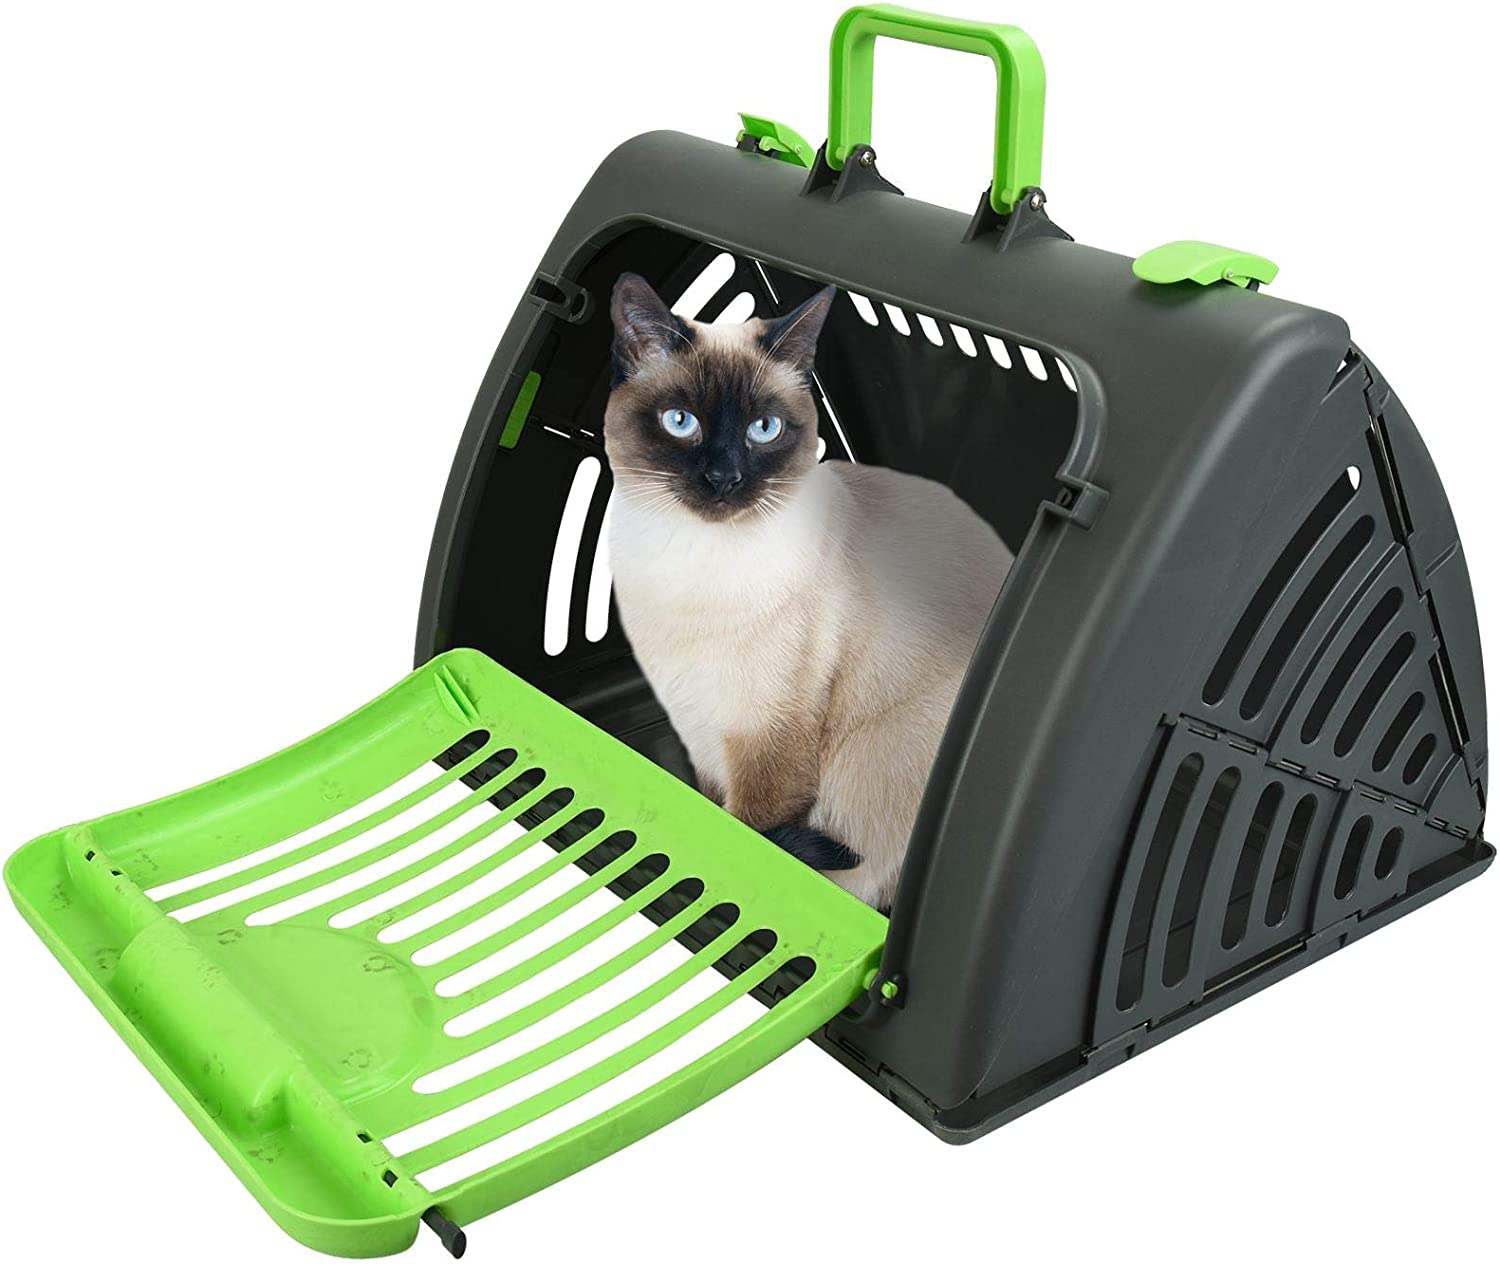 MAX-CARE Large Pet Travel Carrier Dog Cat Rabbit Basket Plastic Handle Hinged Door Folding Collapsible Transport Box Crate Cage Green